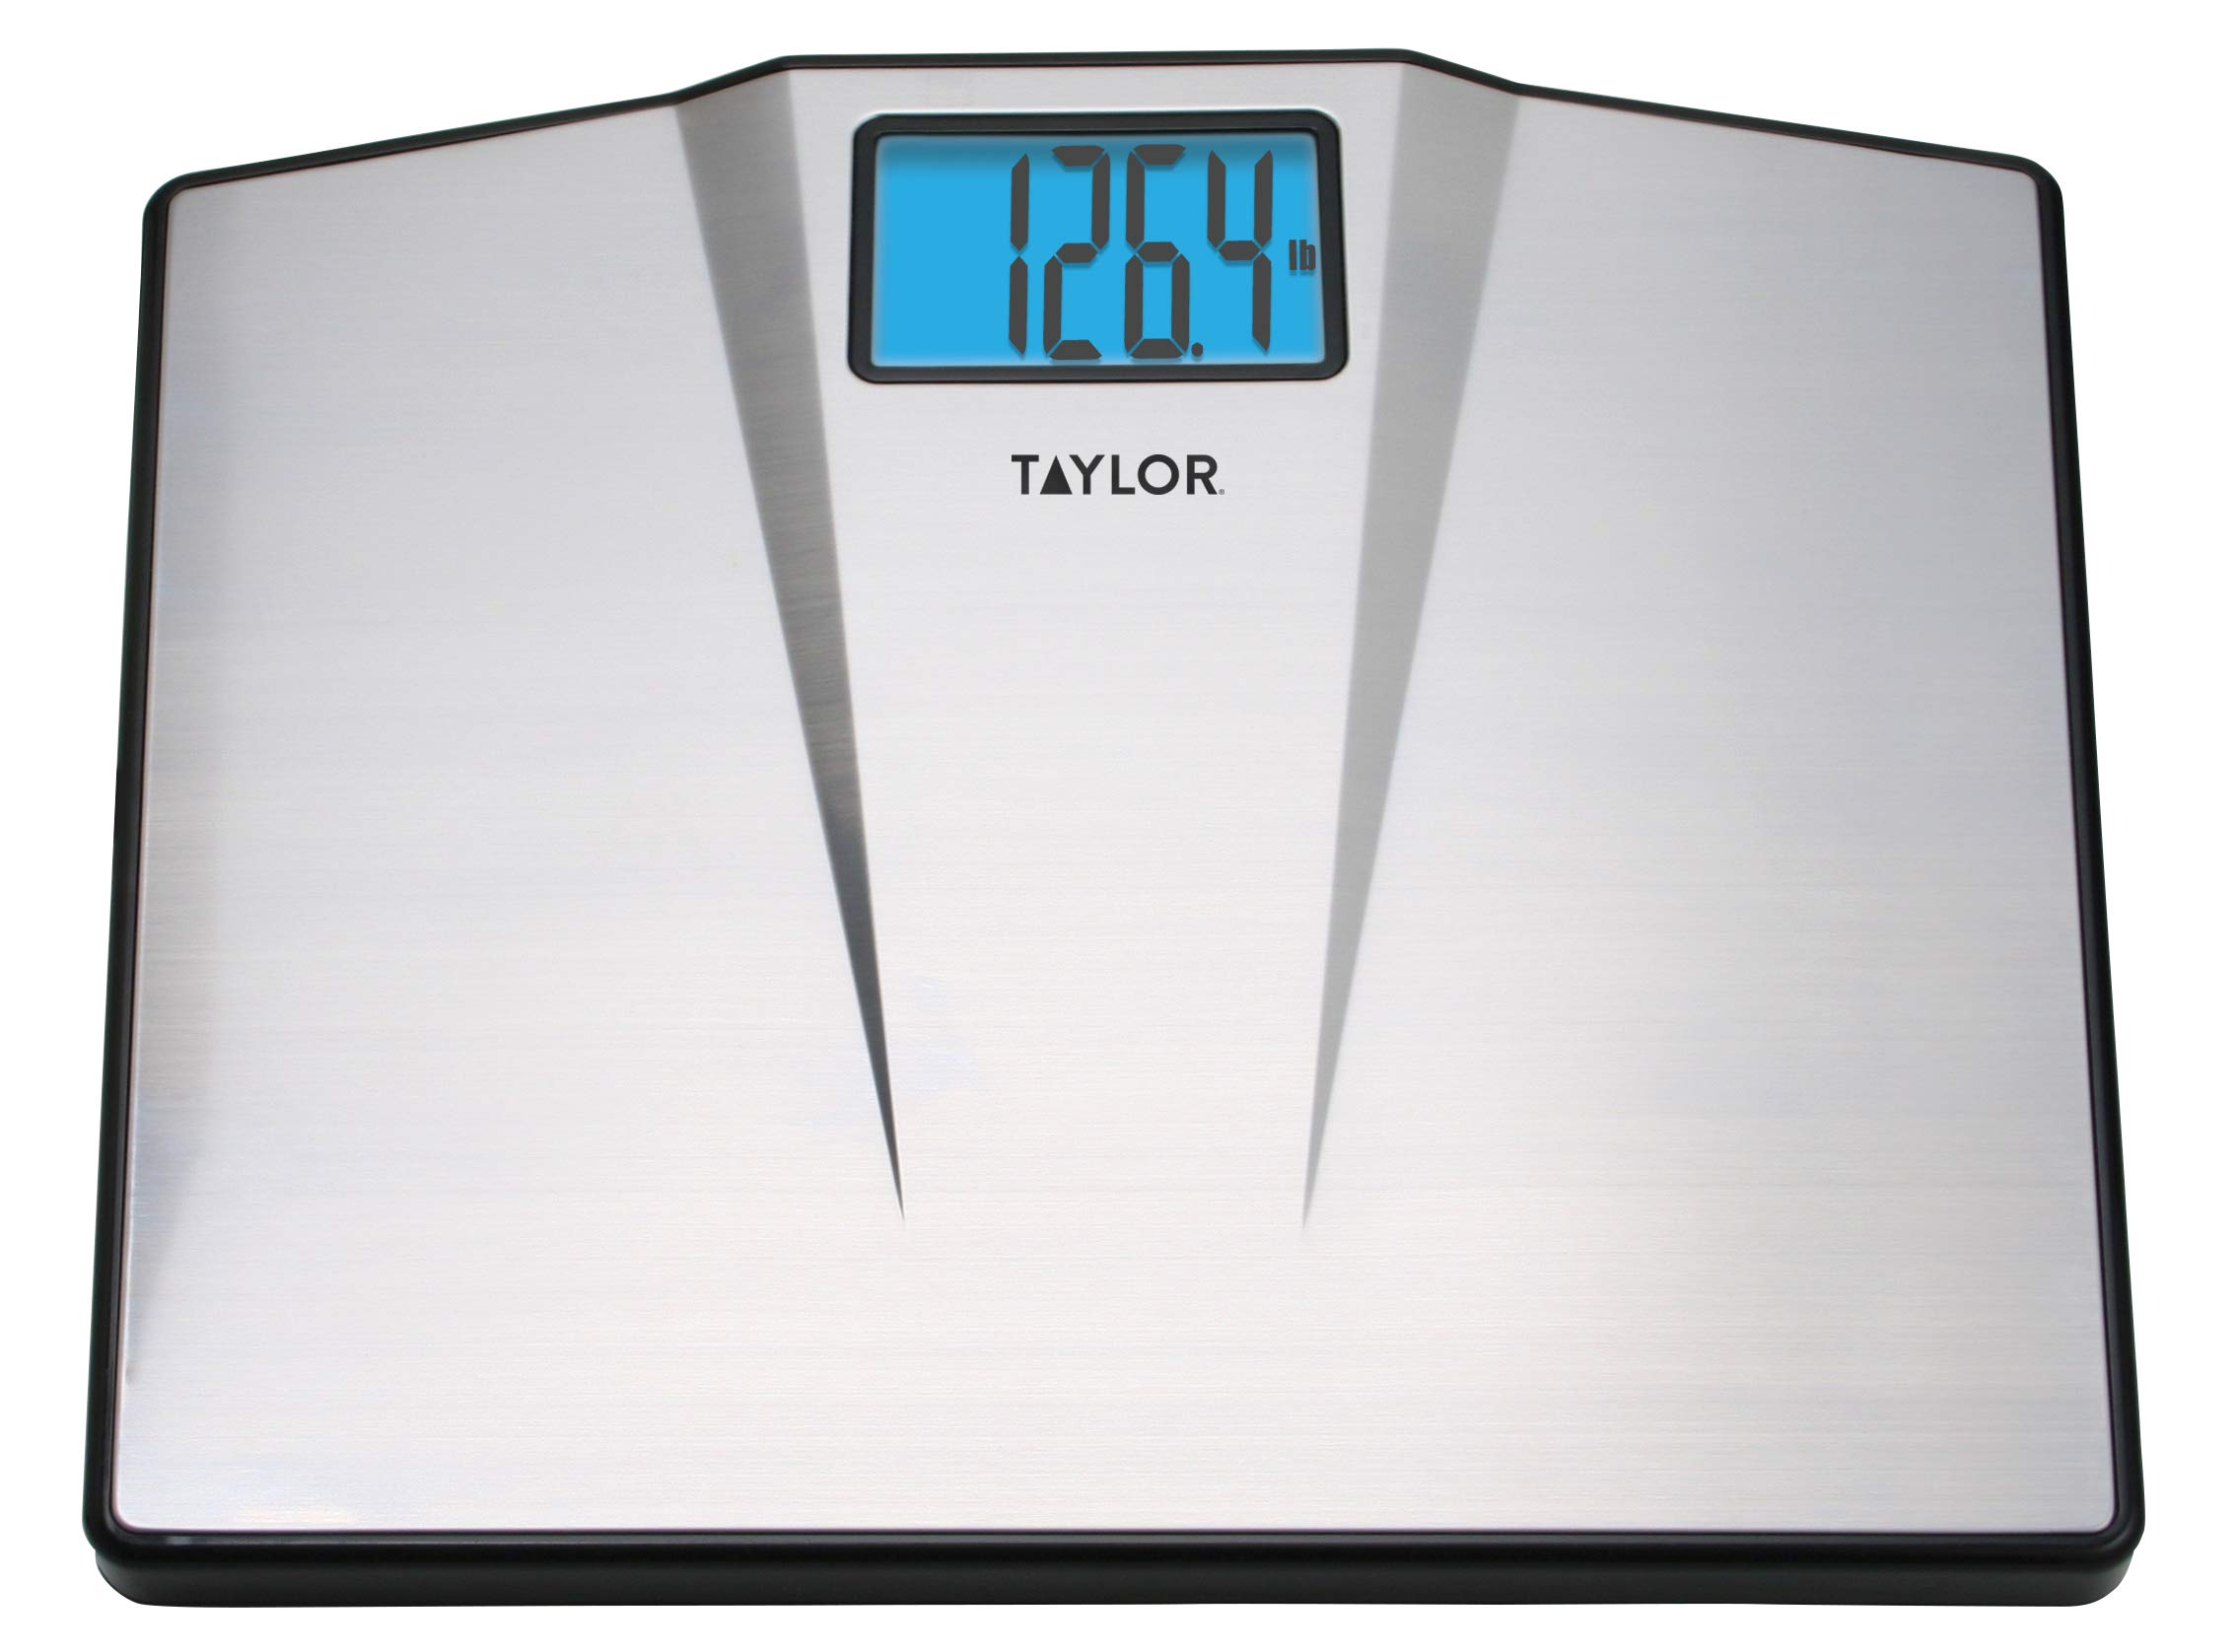 Taylor Precision Products 0 Taylor High Capacity Digital Bathroom Scale, Multicolored by Taylor Precision Products (Image #1)